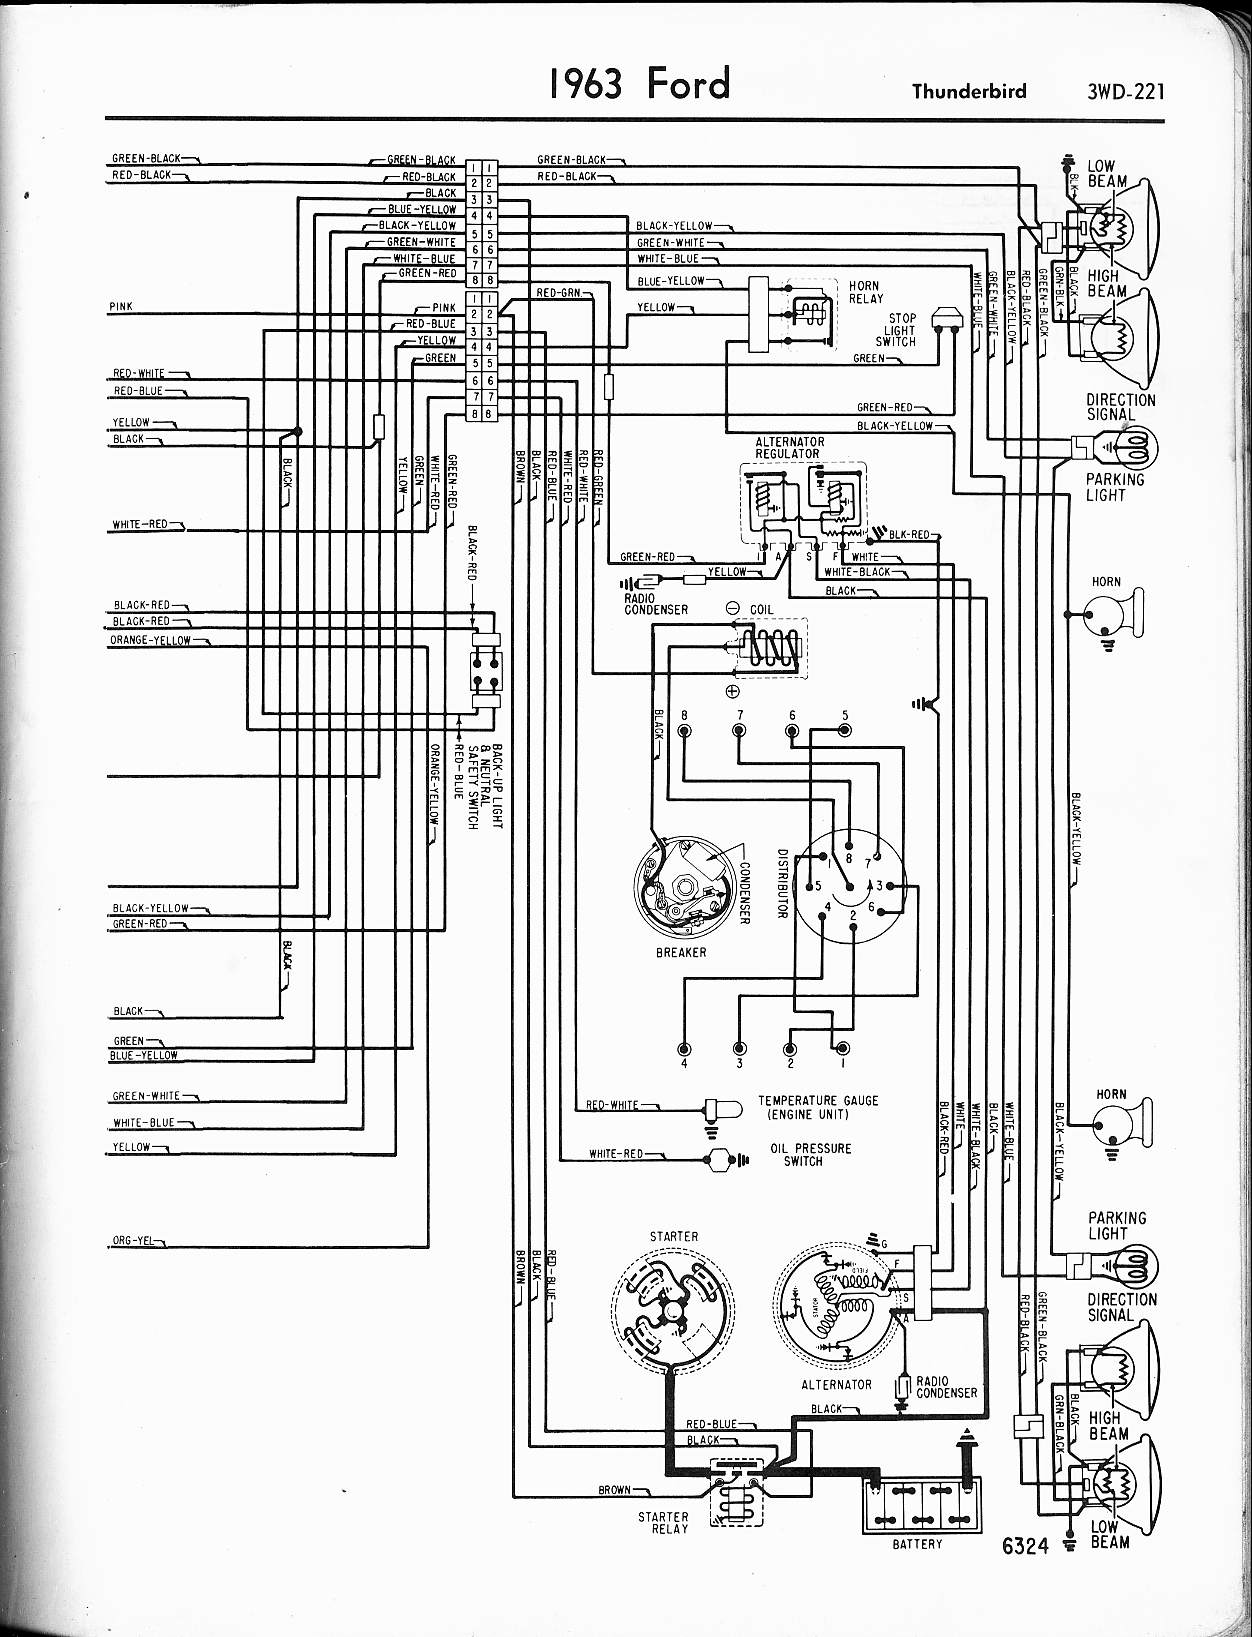 63 Falcon Wiring Diagram Manual Guide 1963 Ford Ranchero 57 65 Diagrams Rh Oldcarmanualproject Com